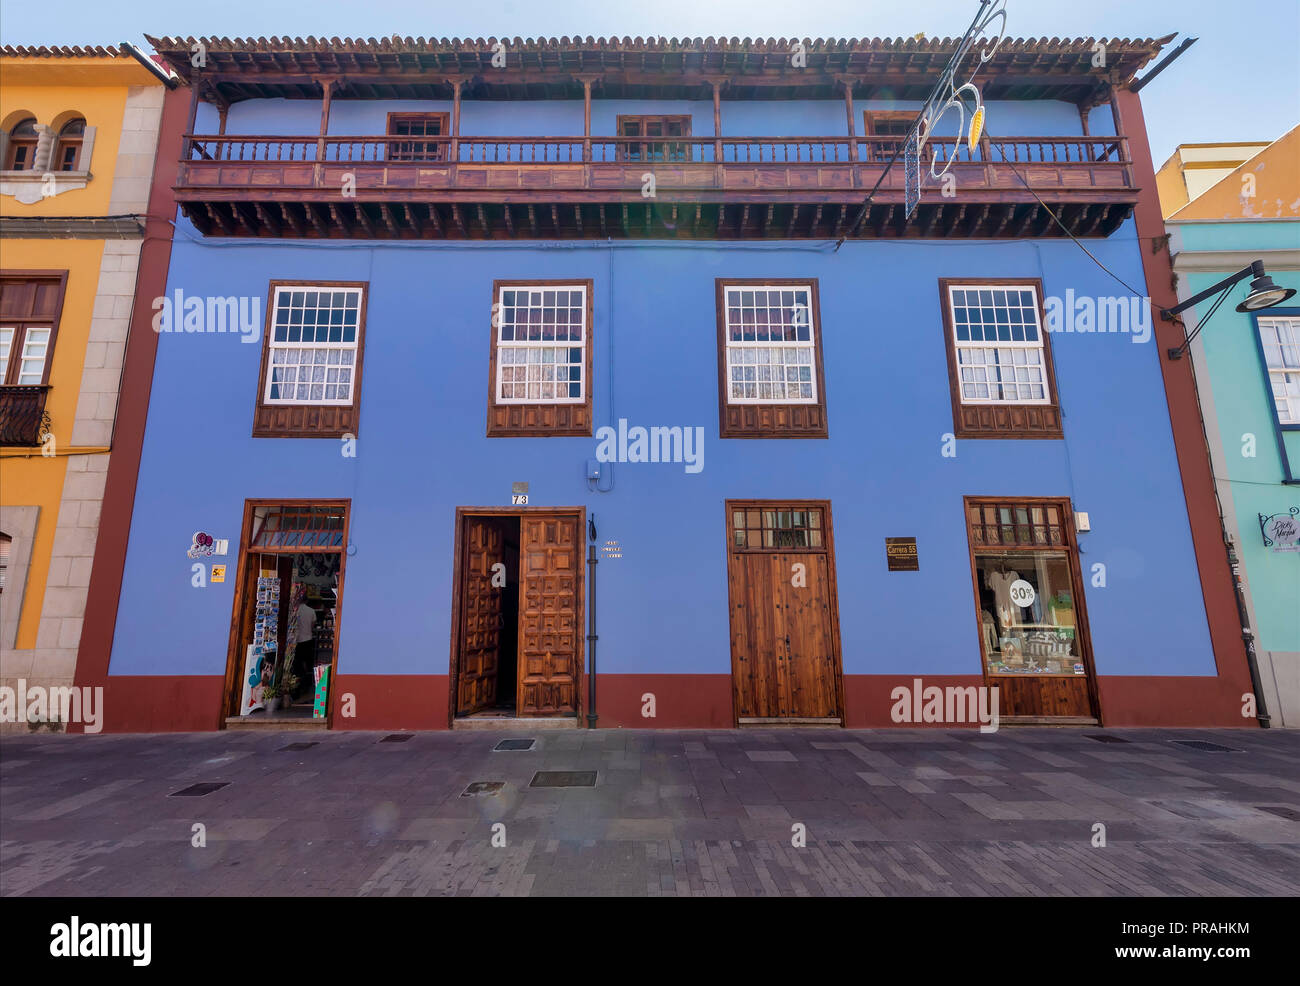 TENERIFE, SPAIN - AUGUST 20: (EDITORS NOTE: A polarizing filter was used for this image.) The Casa Olivera S XVIII house is seen in San Cristóbal de La Laguna on August 20, 2018 in Tenerife, Spain. San Cristóbal de La Laguna was the former capital of the island, and it's part of the UNESCO World Heritage. - Stock Image